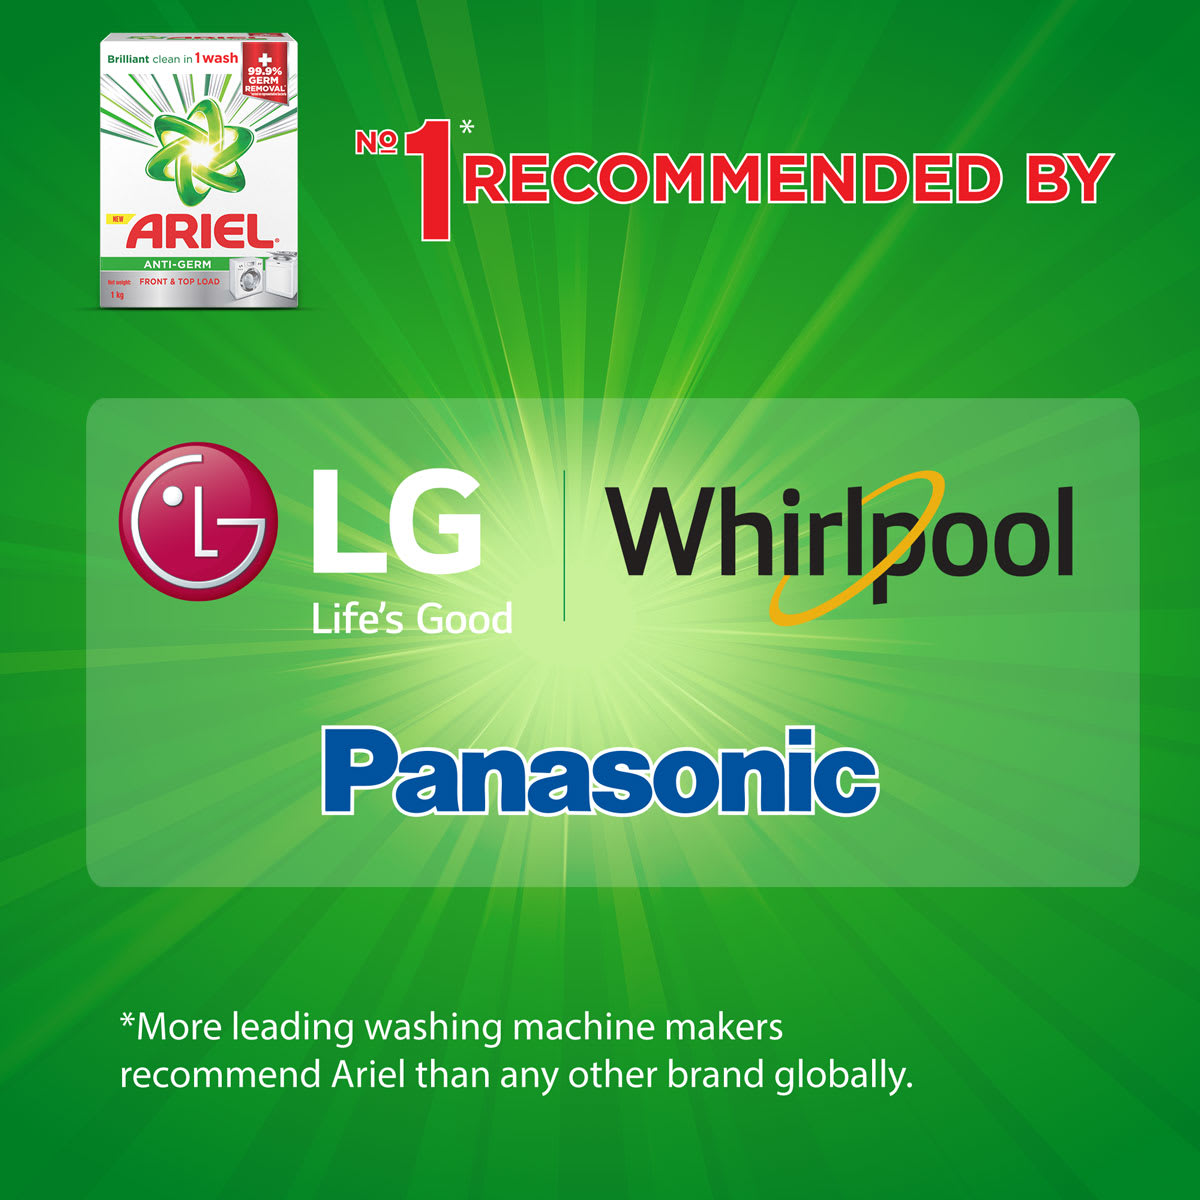 Ariel is the no.1 brand recommended by leading washing machine makers such as LG, Panasonic and Whirlpool